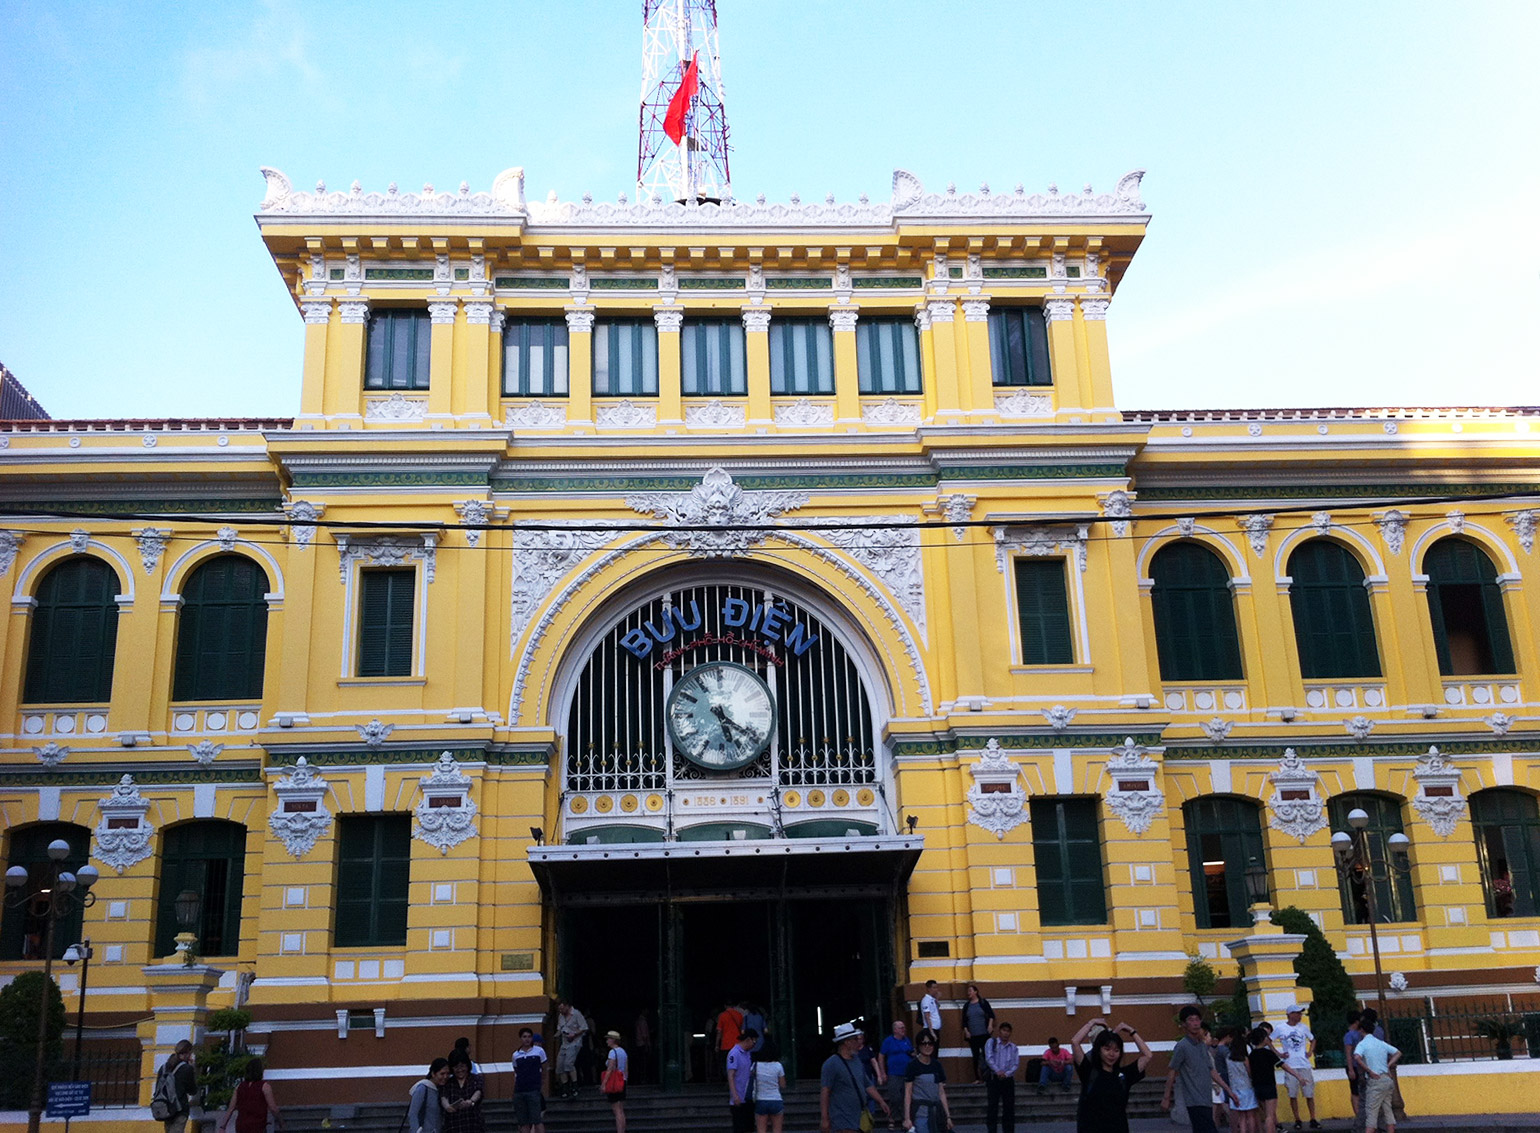 Vietnam, Ho-Chi-Minh, Central Post Office, Reisetipps Vietnam Rundreise;